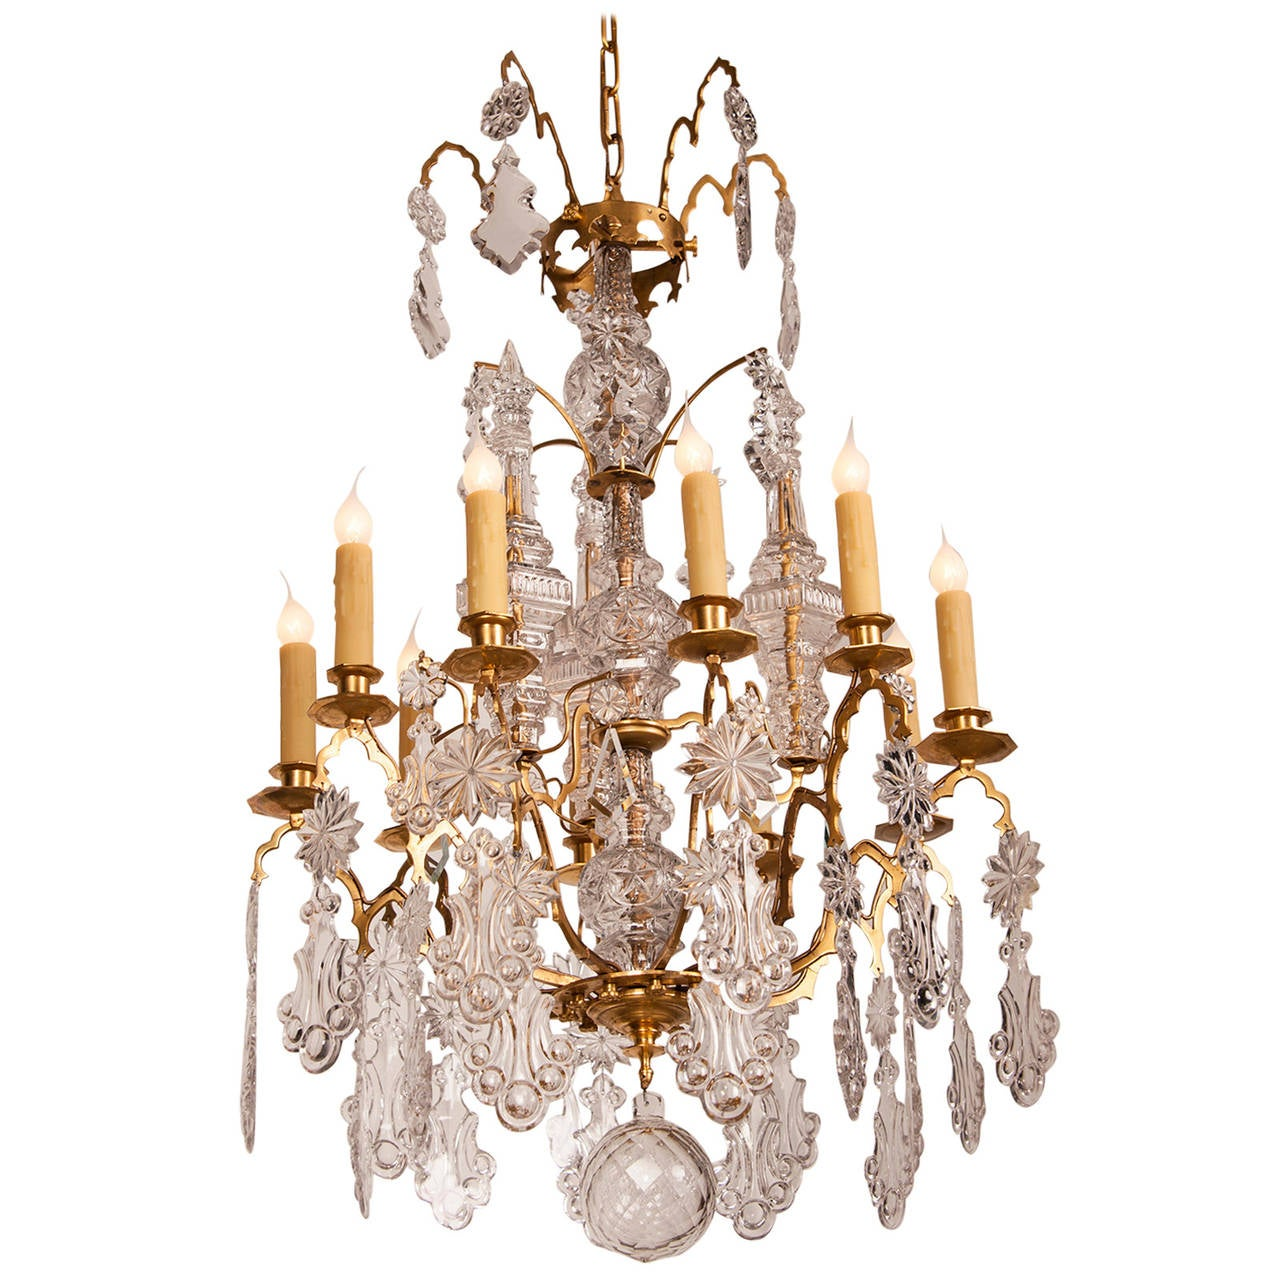 Louis xv crystal gilded brass ten light antique french chandelier circa 1875 for sale at 1stdibs - Circa lighting chandeliers ...